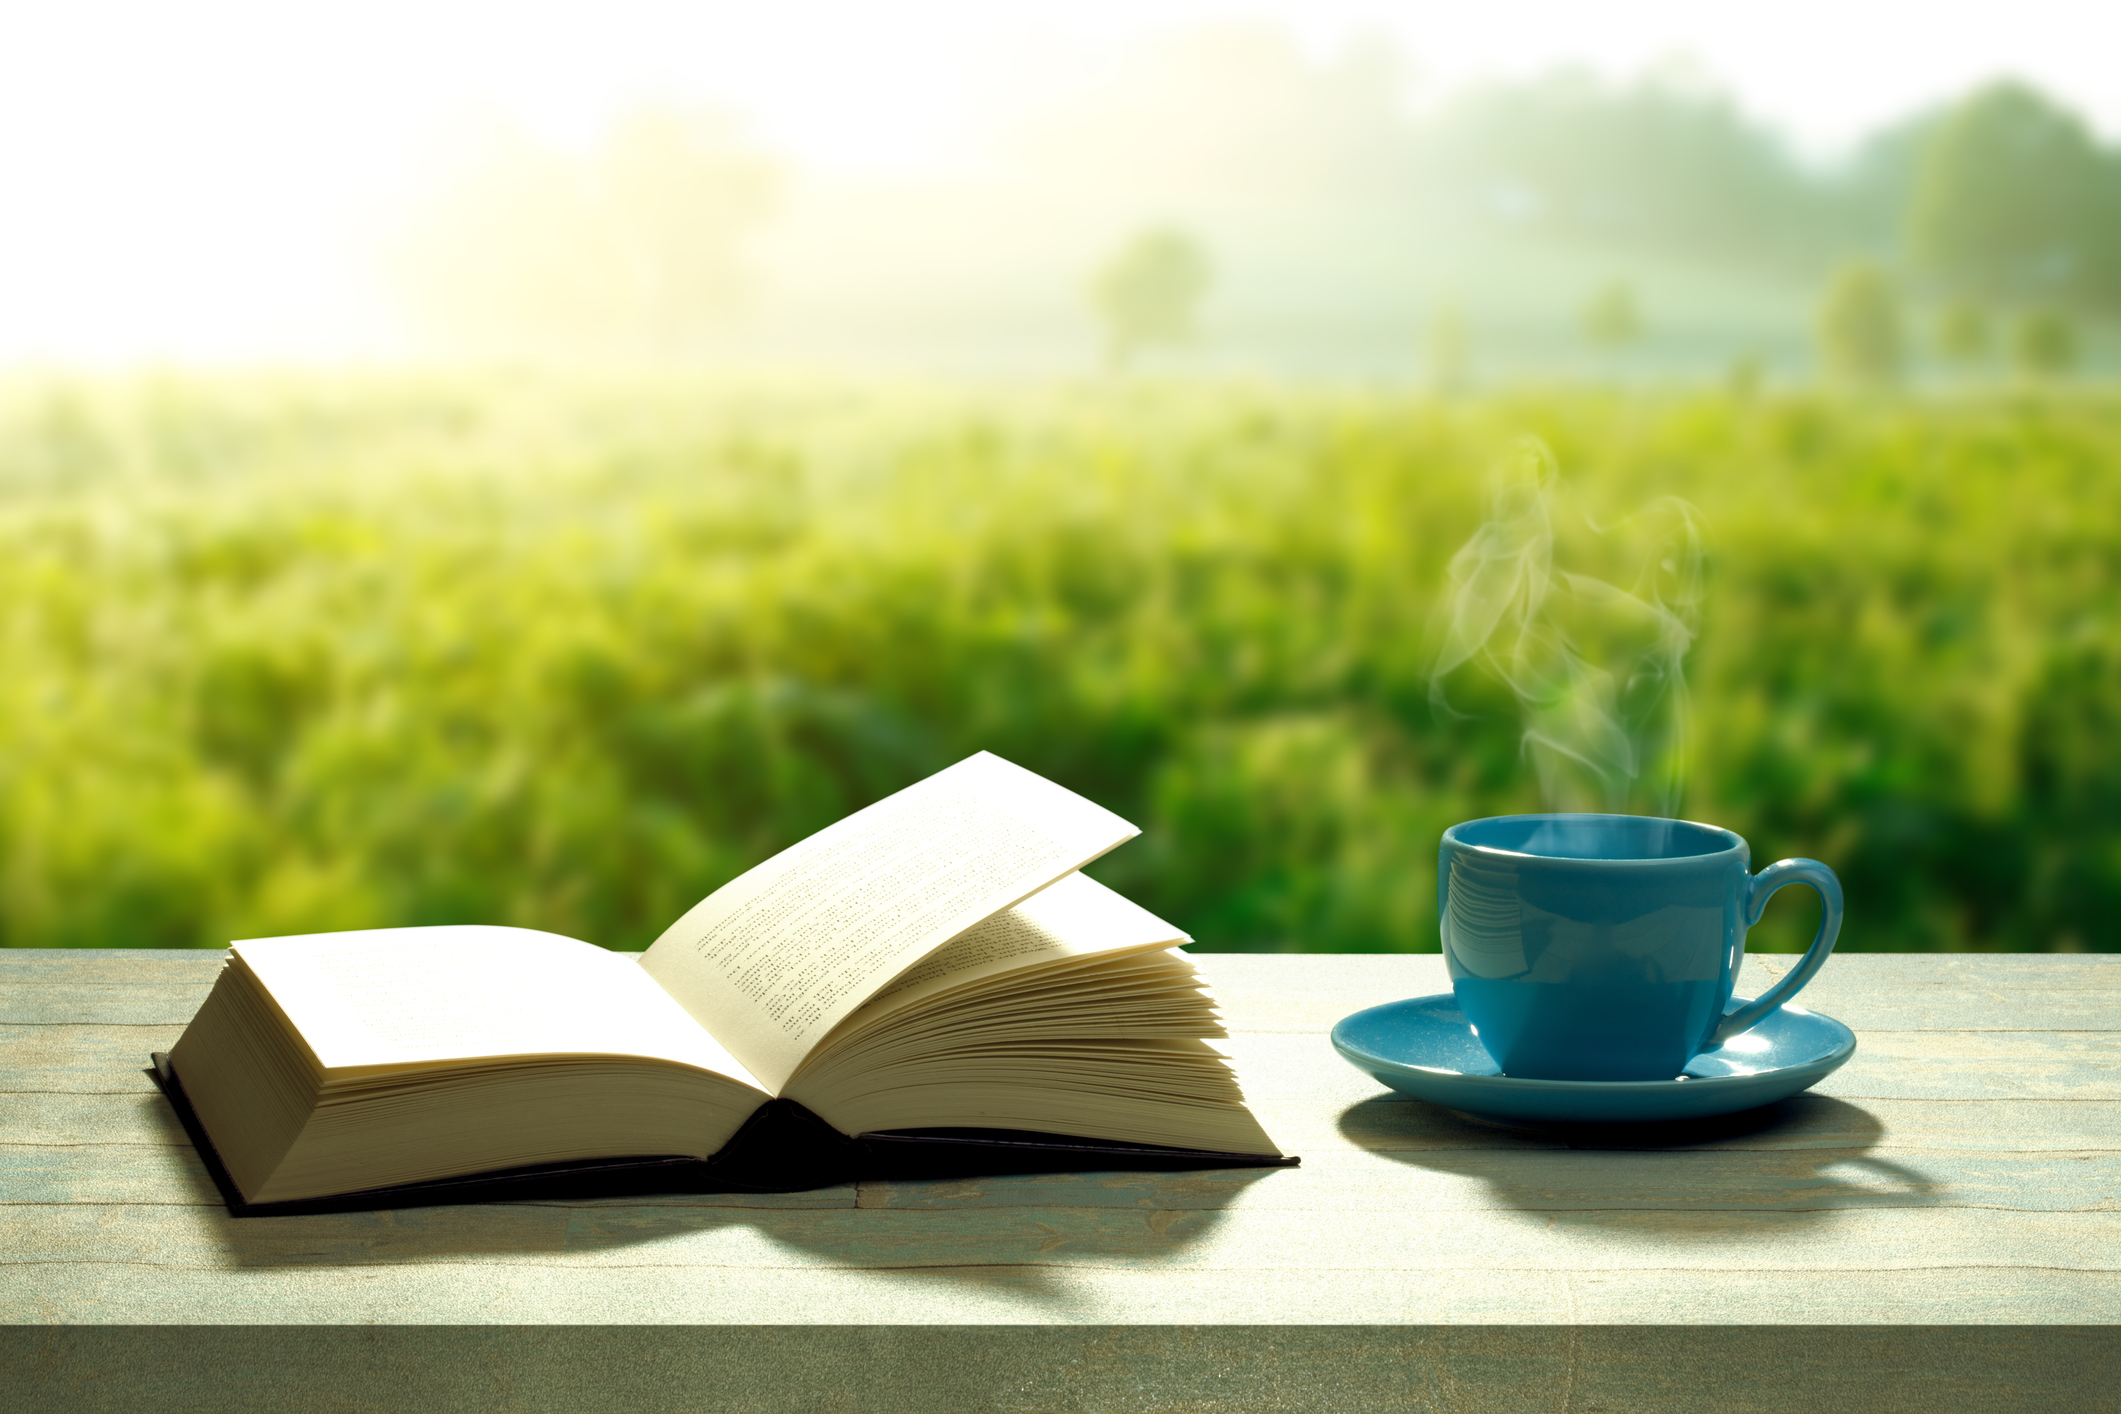 open novel book with a blue coffee cup and a wooden table